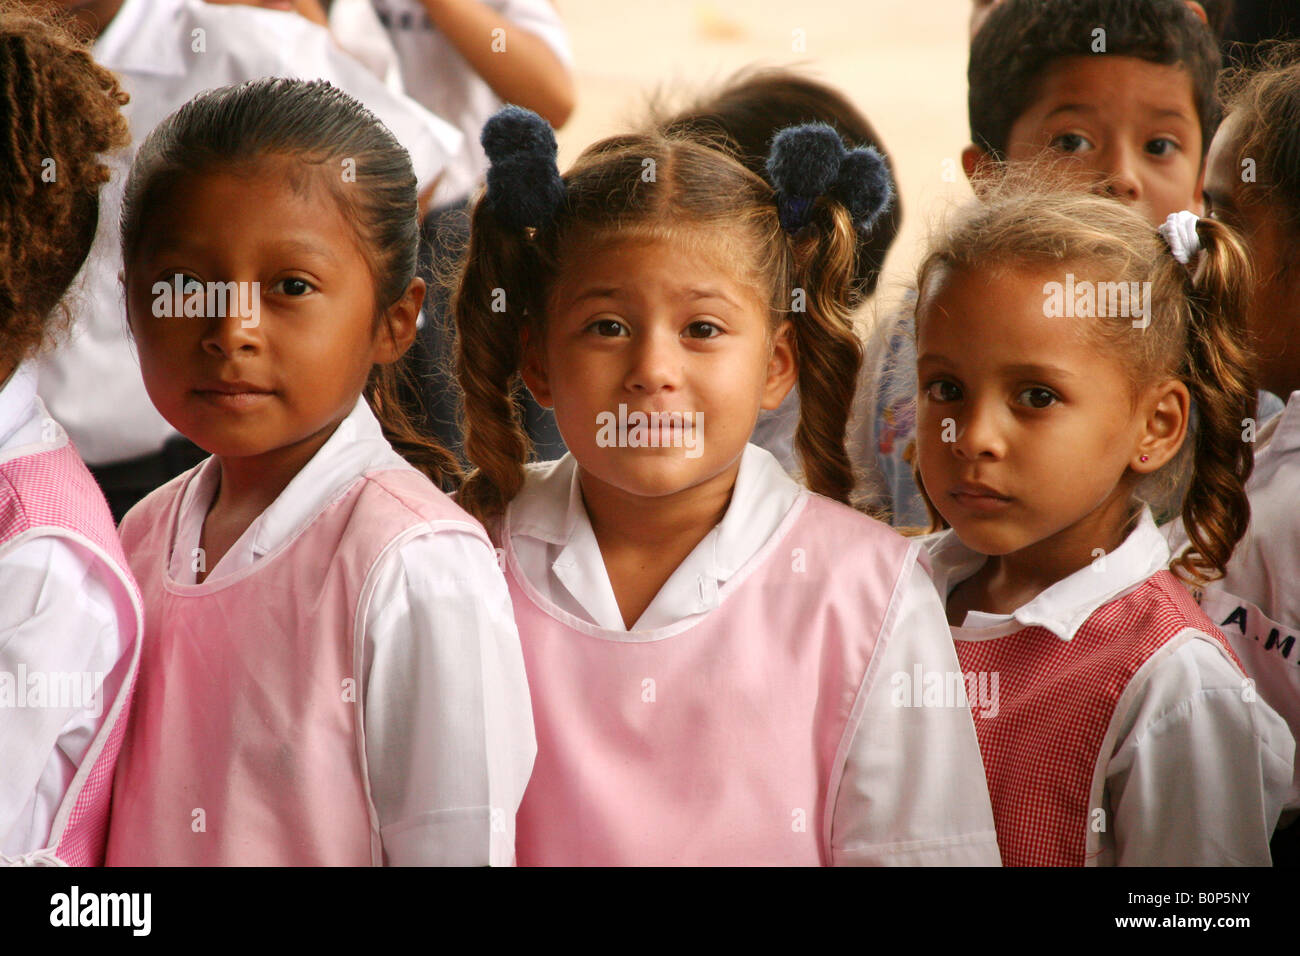 panama city single hispanic girls Crime is scarce outside of certain slums in panama city and  the sexes are traditionally hispanic,  kuna indians revere adolescent girls, .